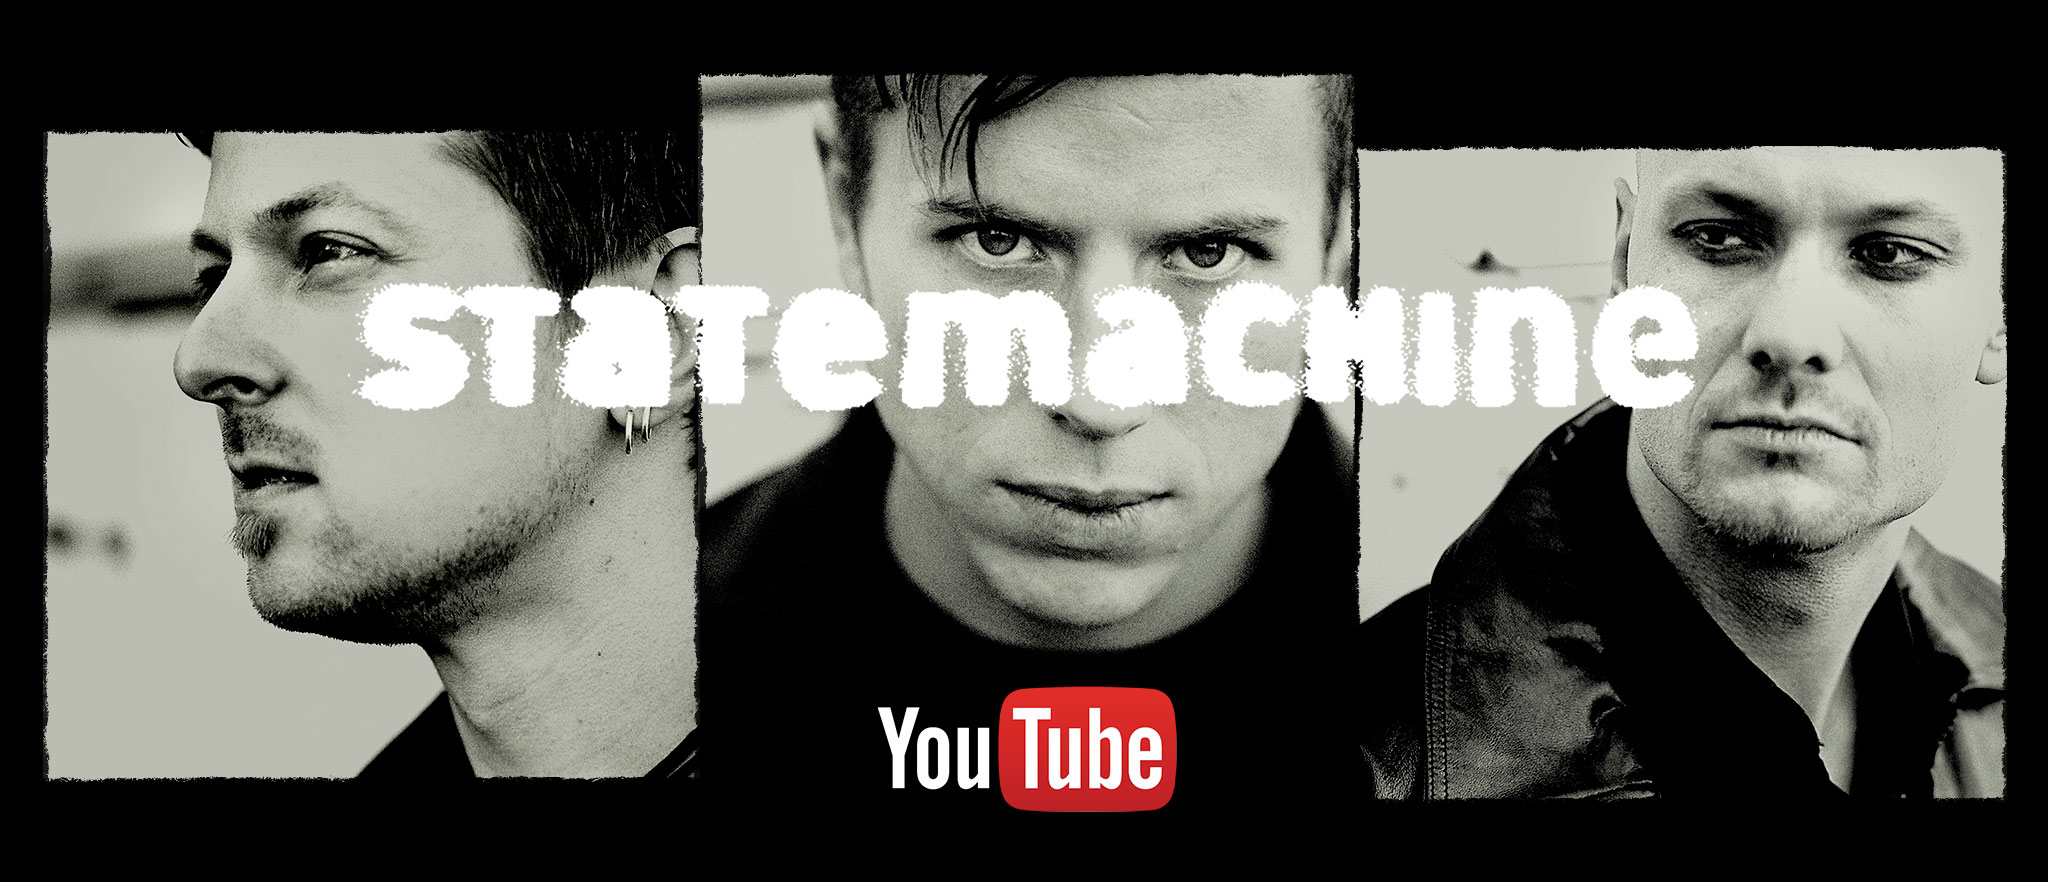 Statemachine YouTube channel art. Photos: Tove Jessica Frank, tovefrank.com